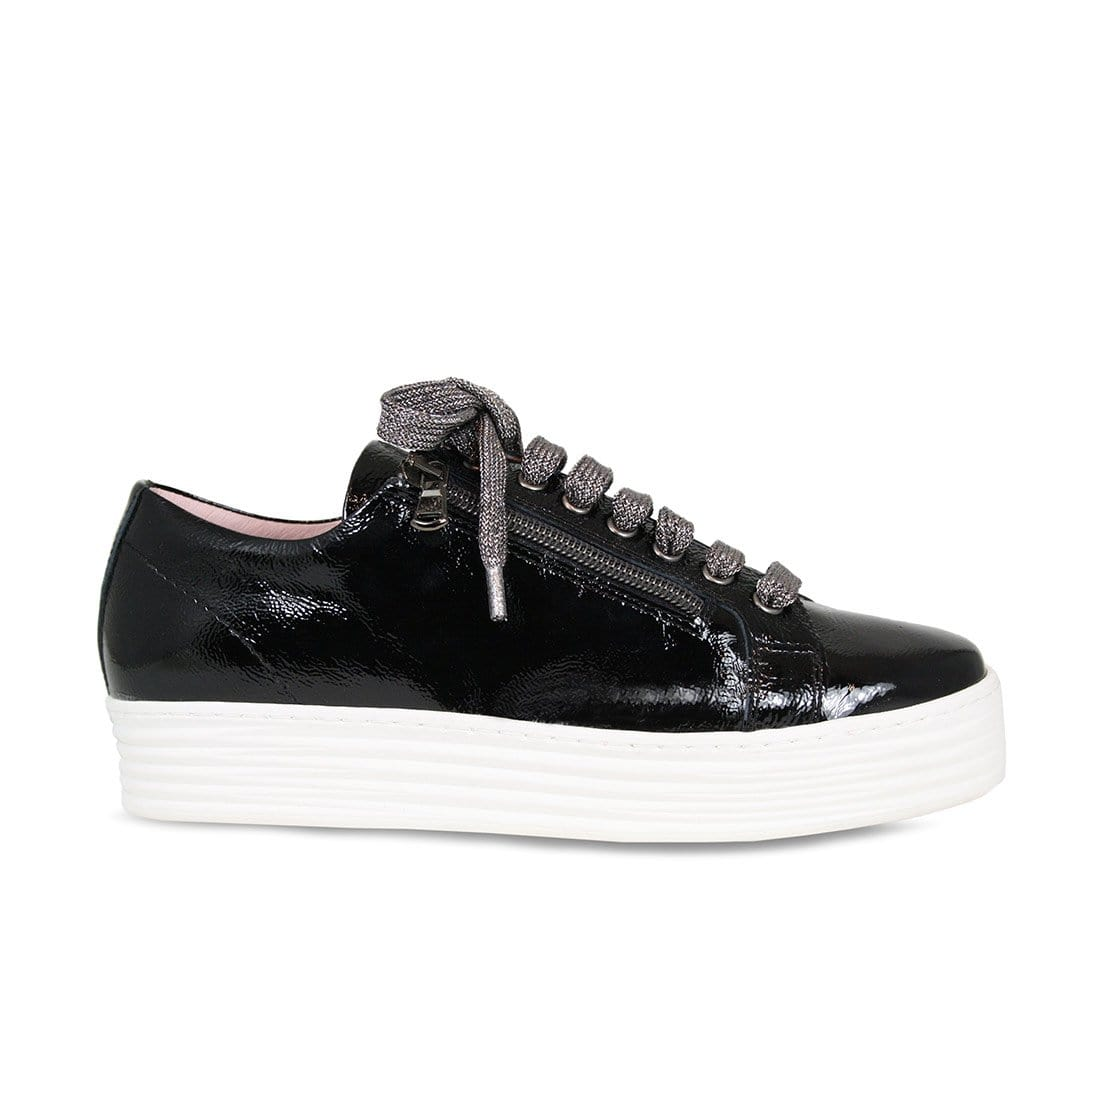 Hero: Black Patent Leather